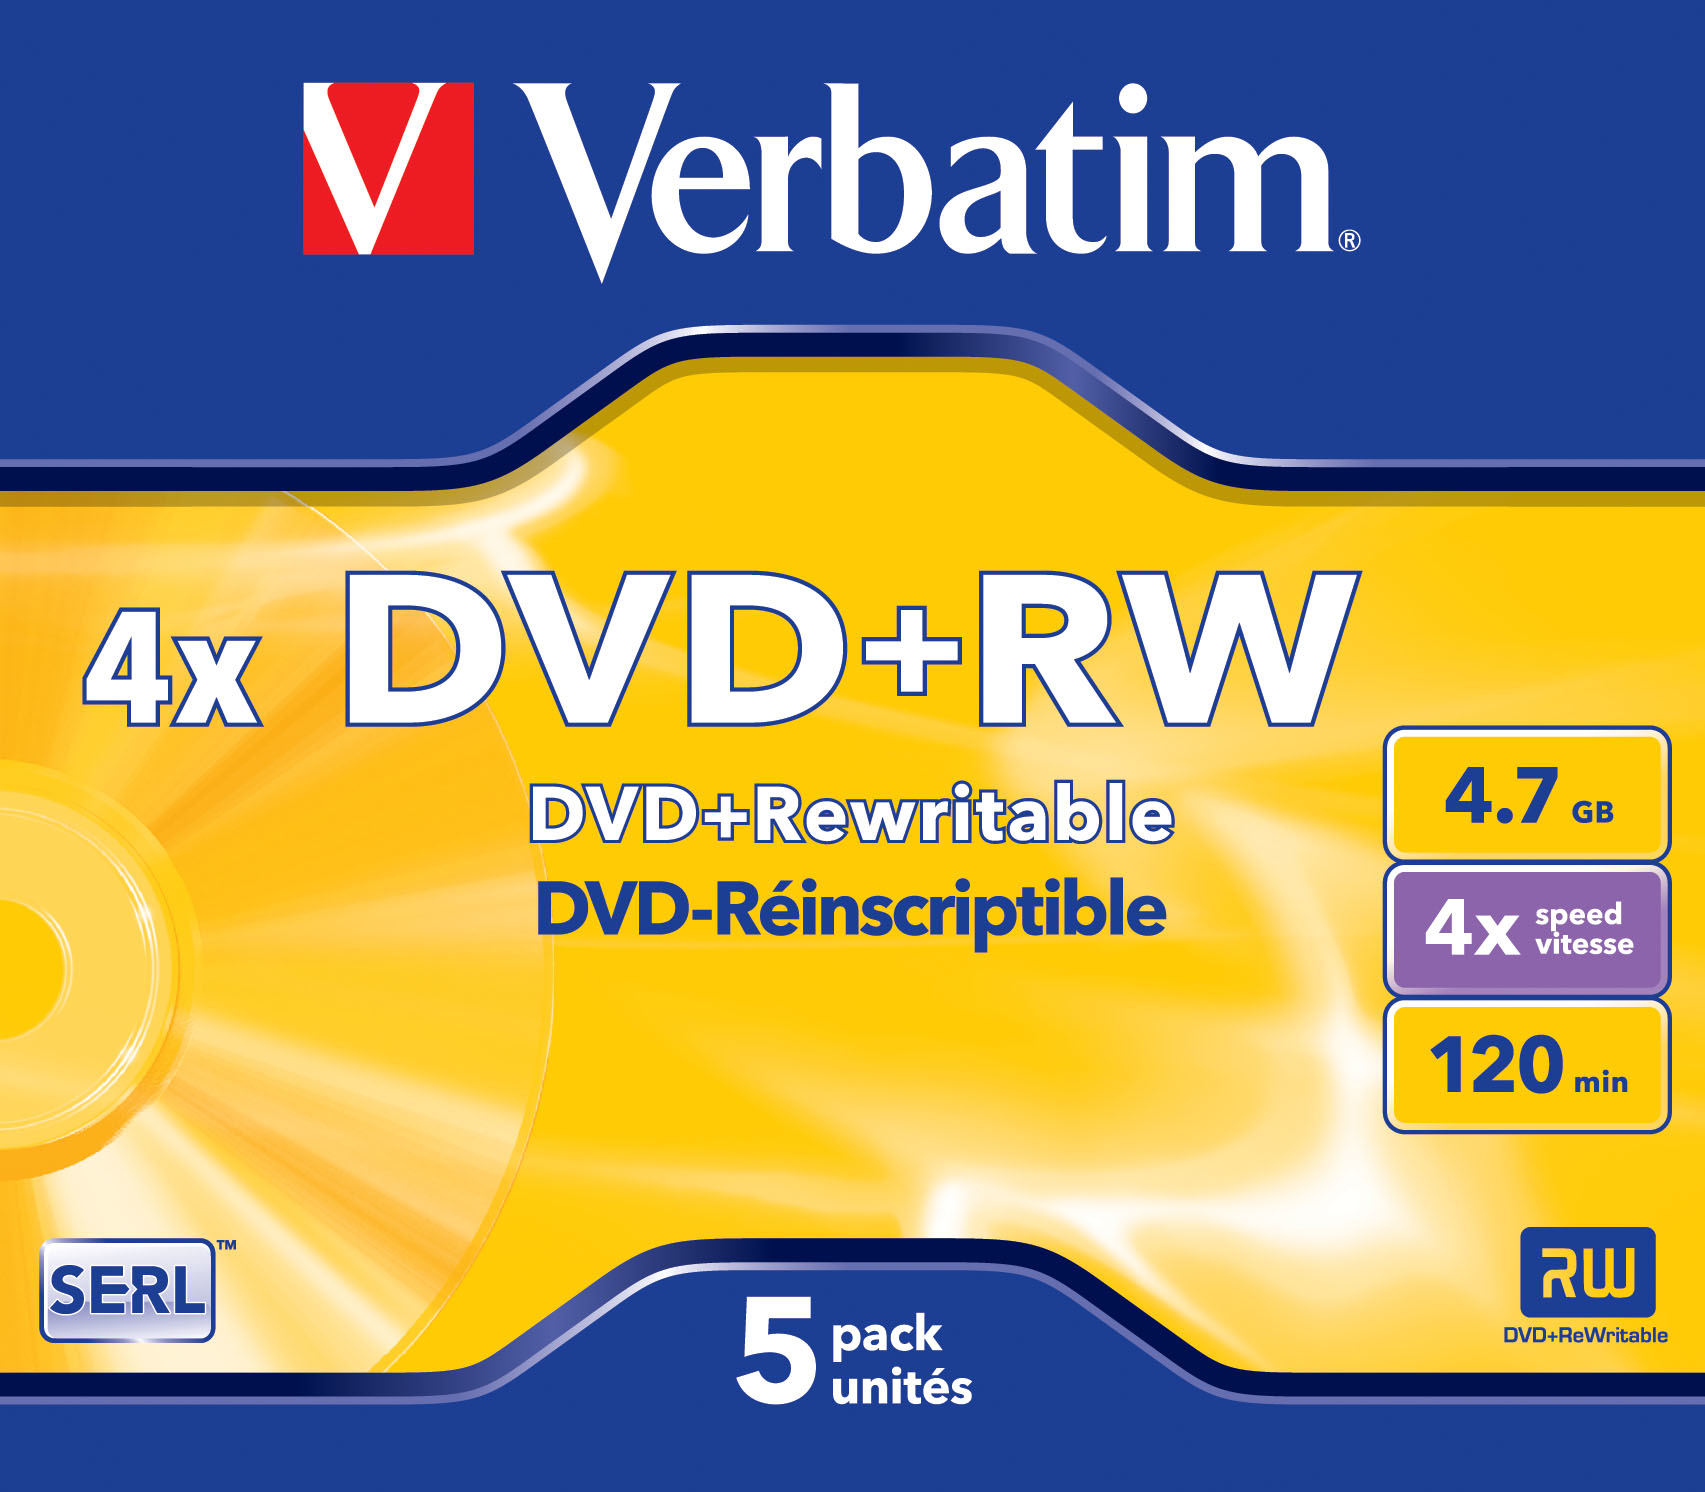 1x5 Verbatim DVD+RW 4,7GB 4x Speed, matt silver Jewel Case